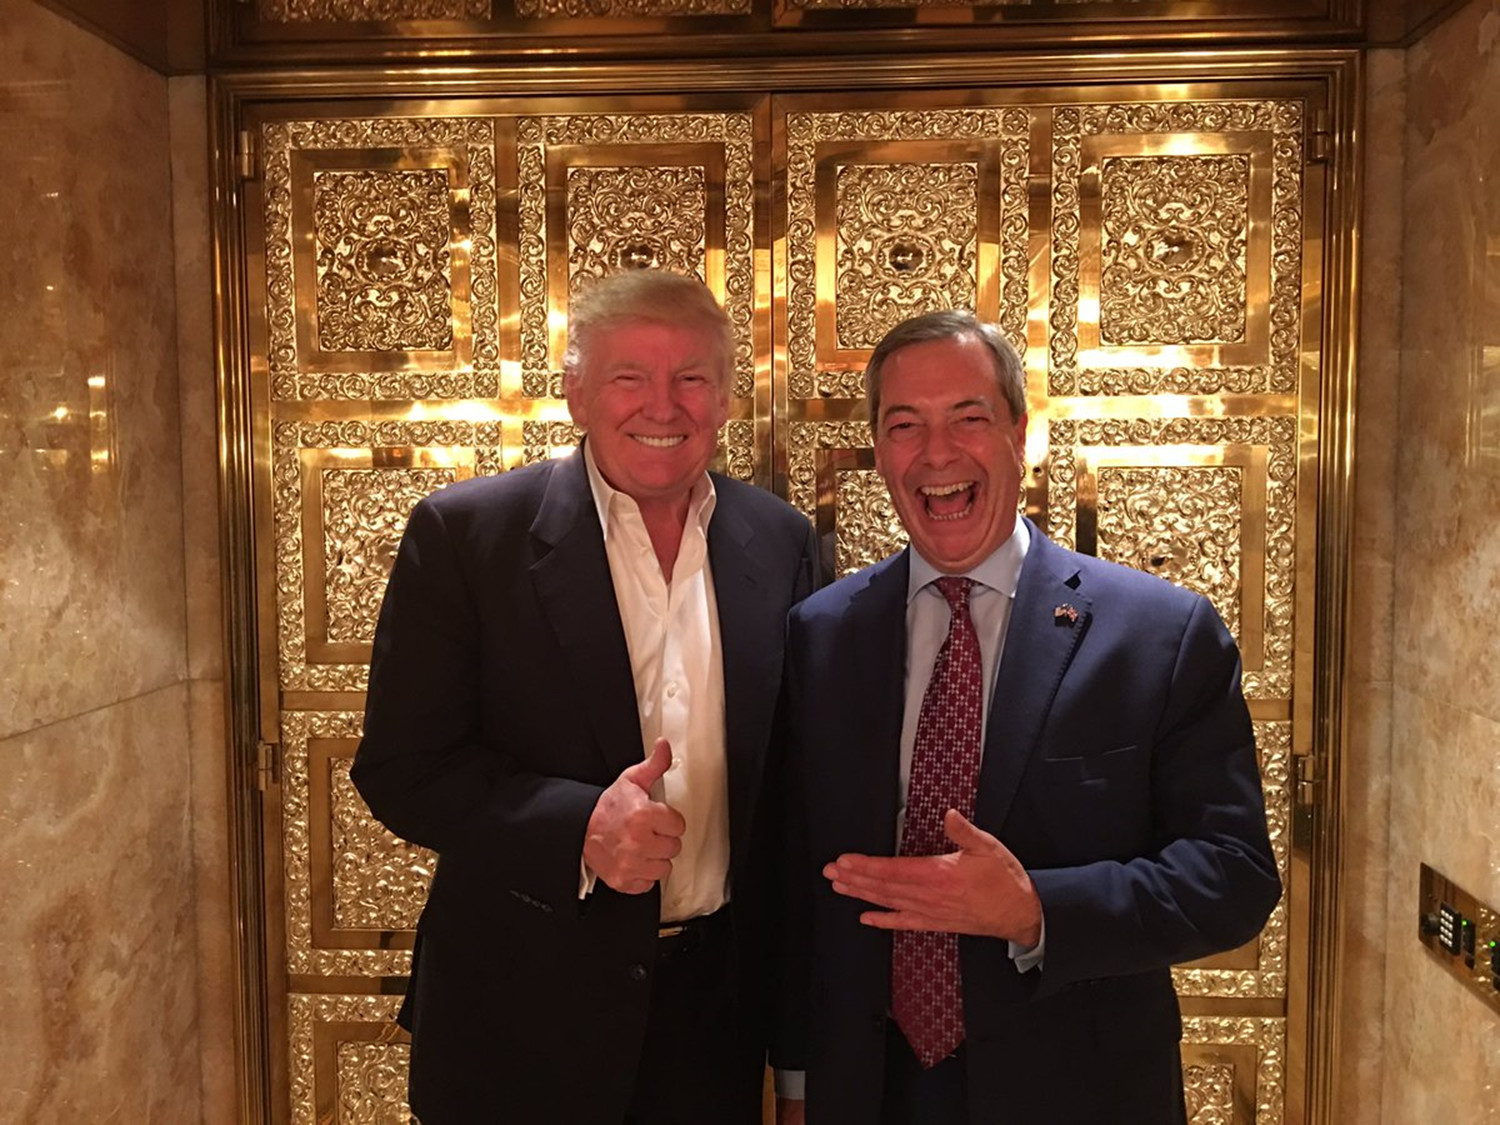 photo of Trump and Farage on November 12, 2016